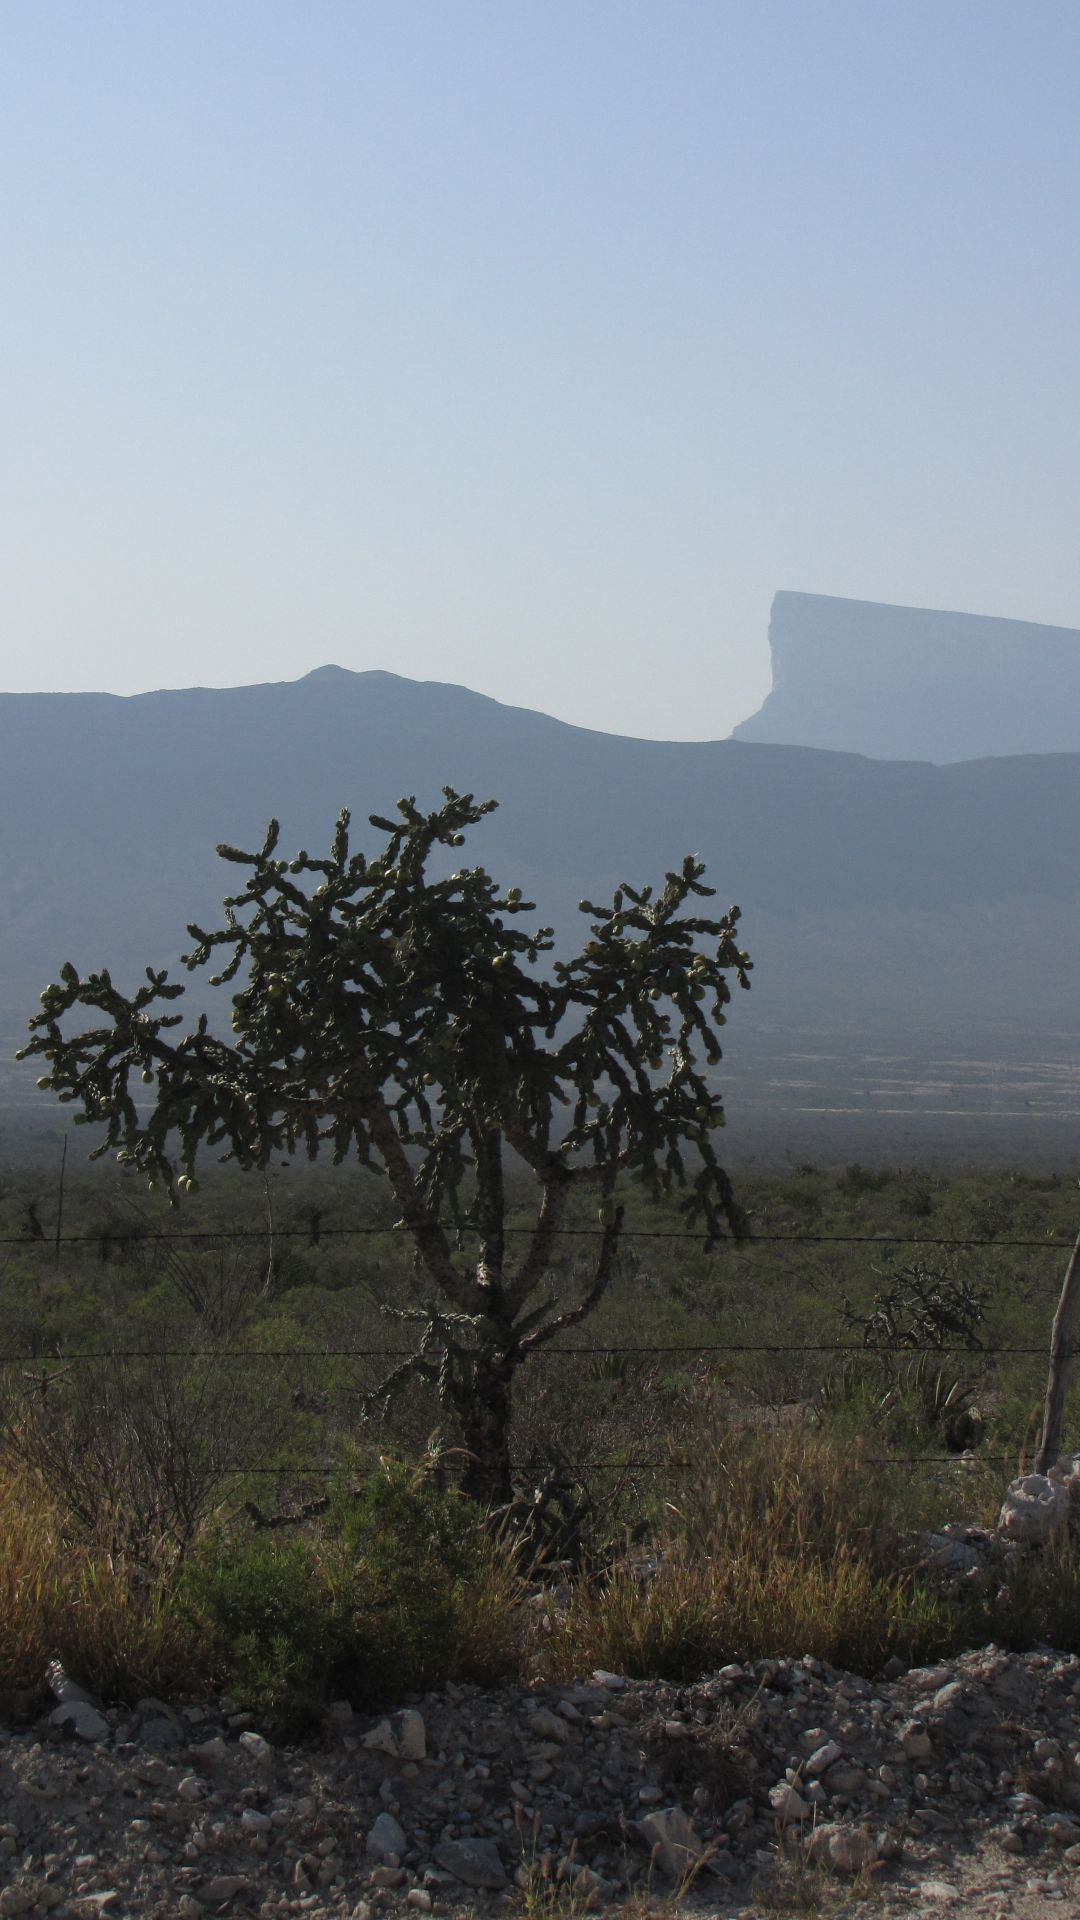 Nr Mina, NL, Mexico - Cactus 'tree' with huge (maybe 5 miles long) table mountain in background